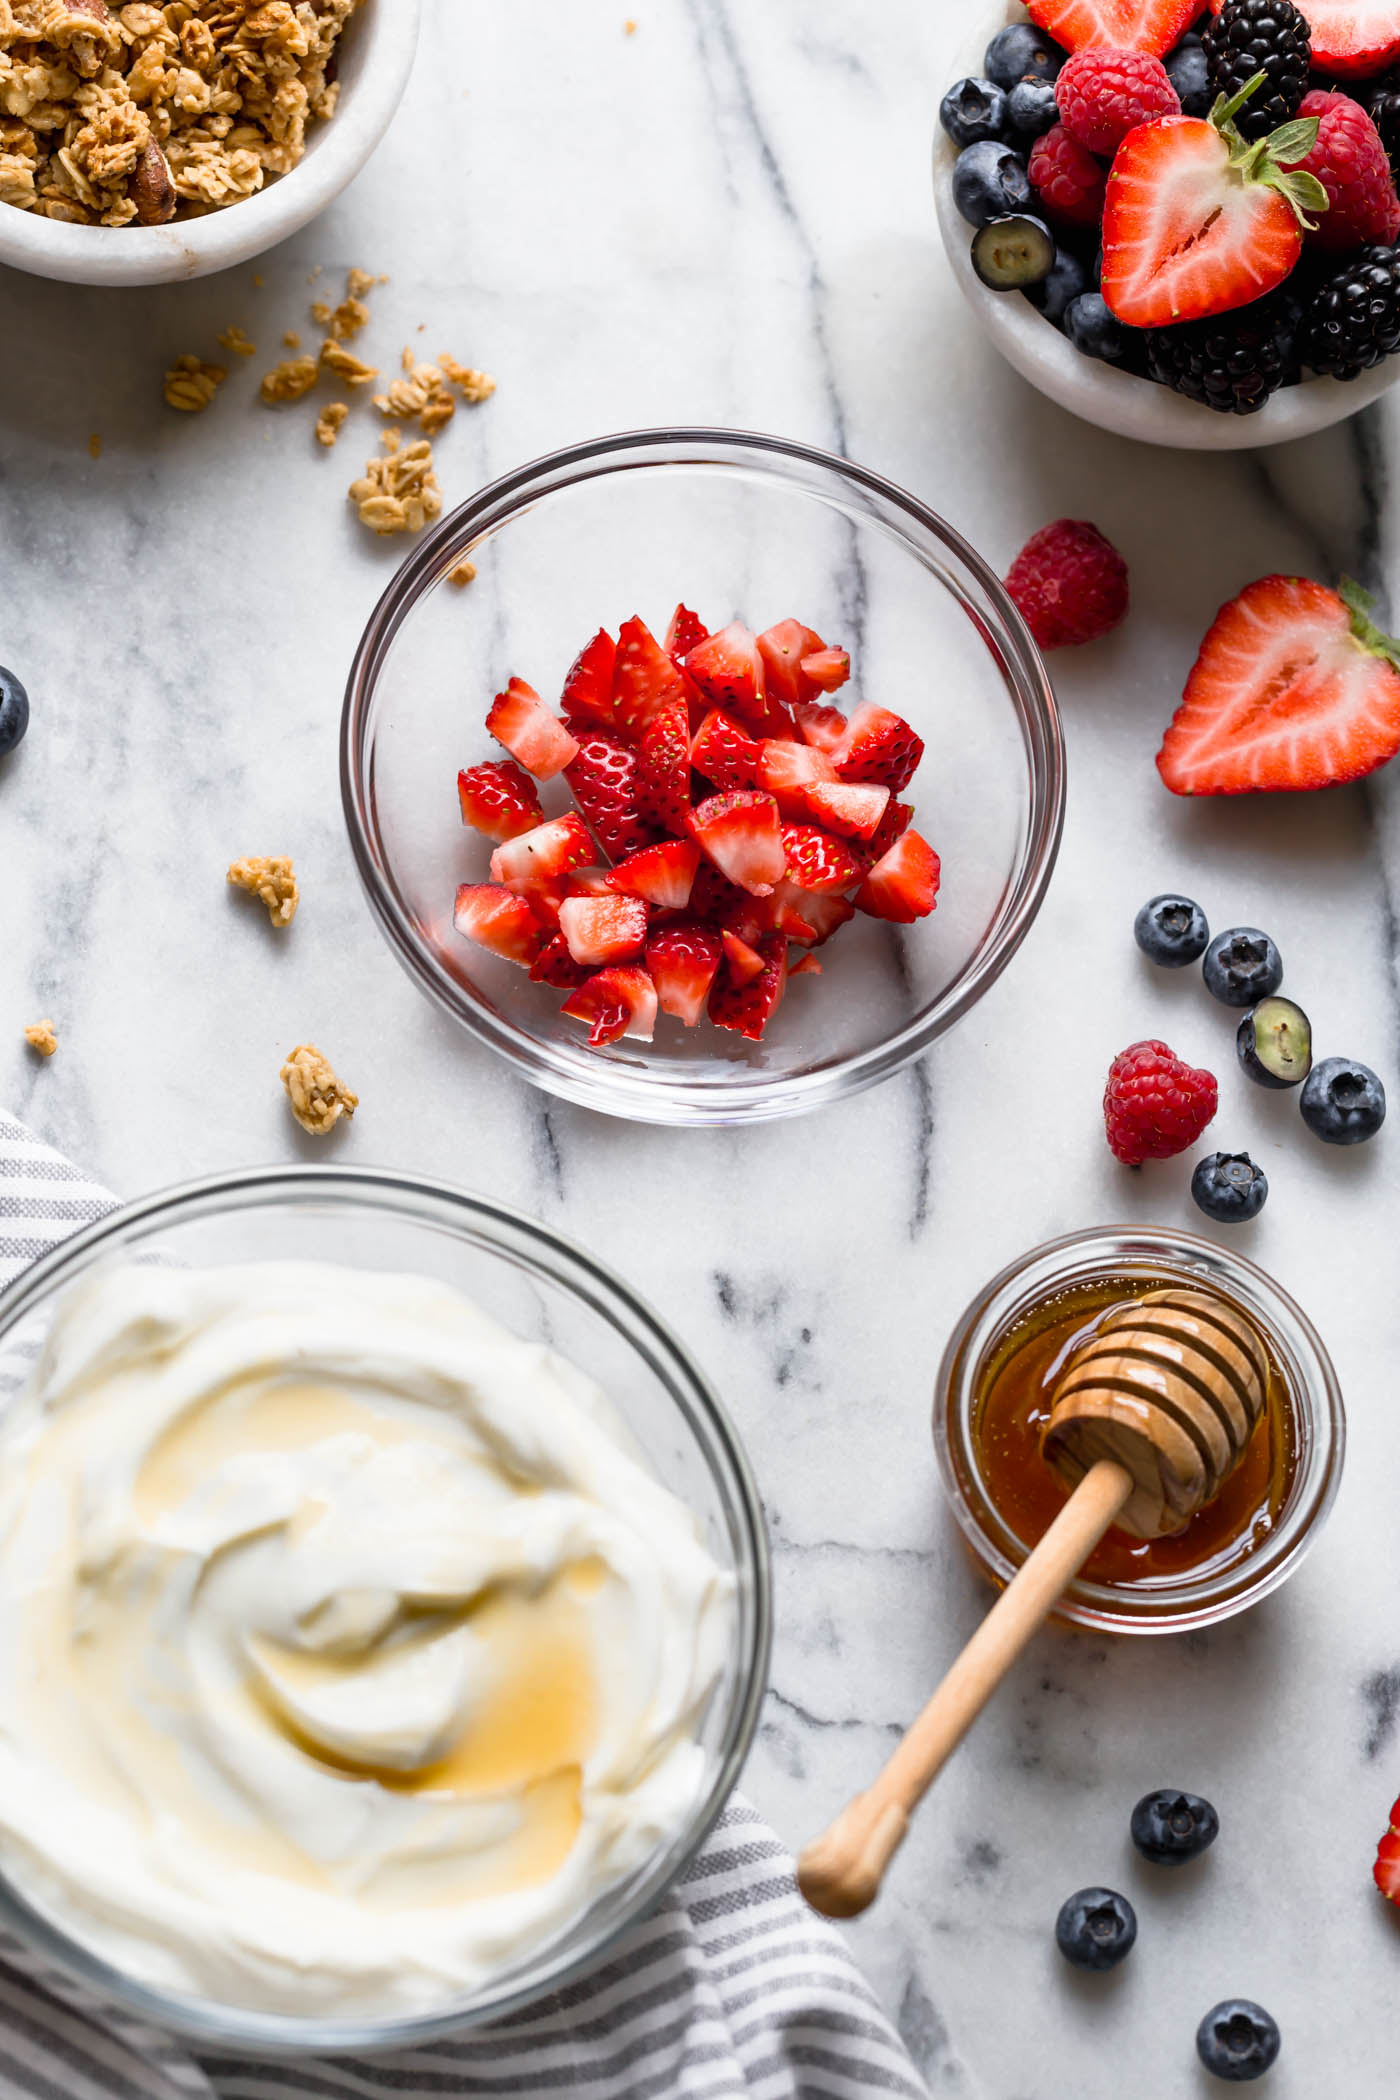 easy & healthy frozen yogurt bites call for only 5 ingredients and 10 minutes of active prep time! with wholesome ingredients like greek yogurt, fruit, honey, and your favorite granola, these frozen yogurt bites are as healthy as they are delicious - the best little treat to keep in your freezer this summer! #playswellwithbutter #frozenyogurtbites #frozenyogurt #greekyogurt #healthysnack #glutenfreerecipe #summertreats #summerdesserts